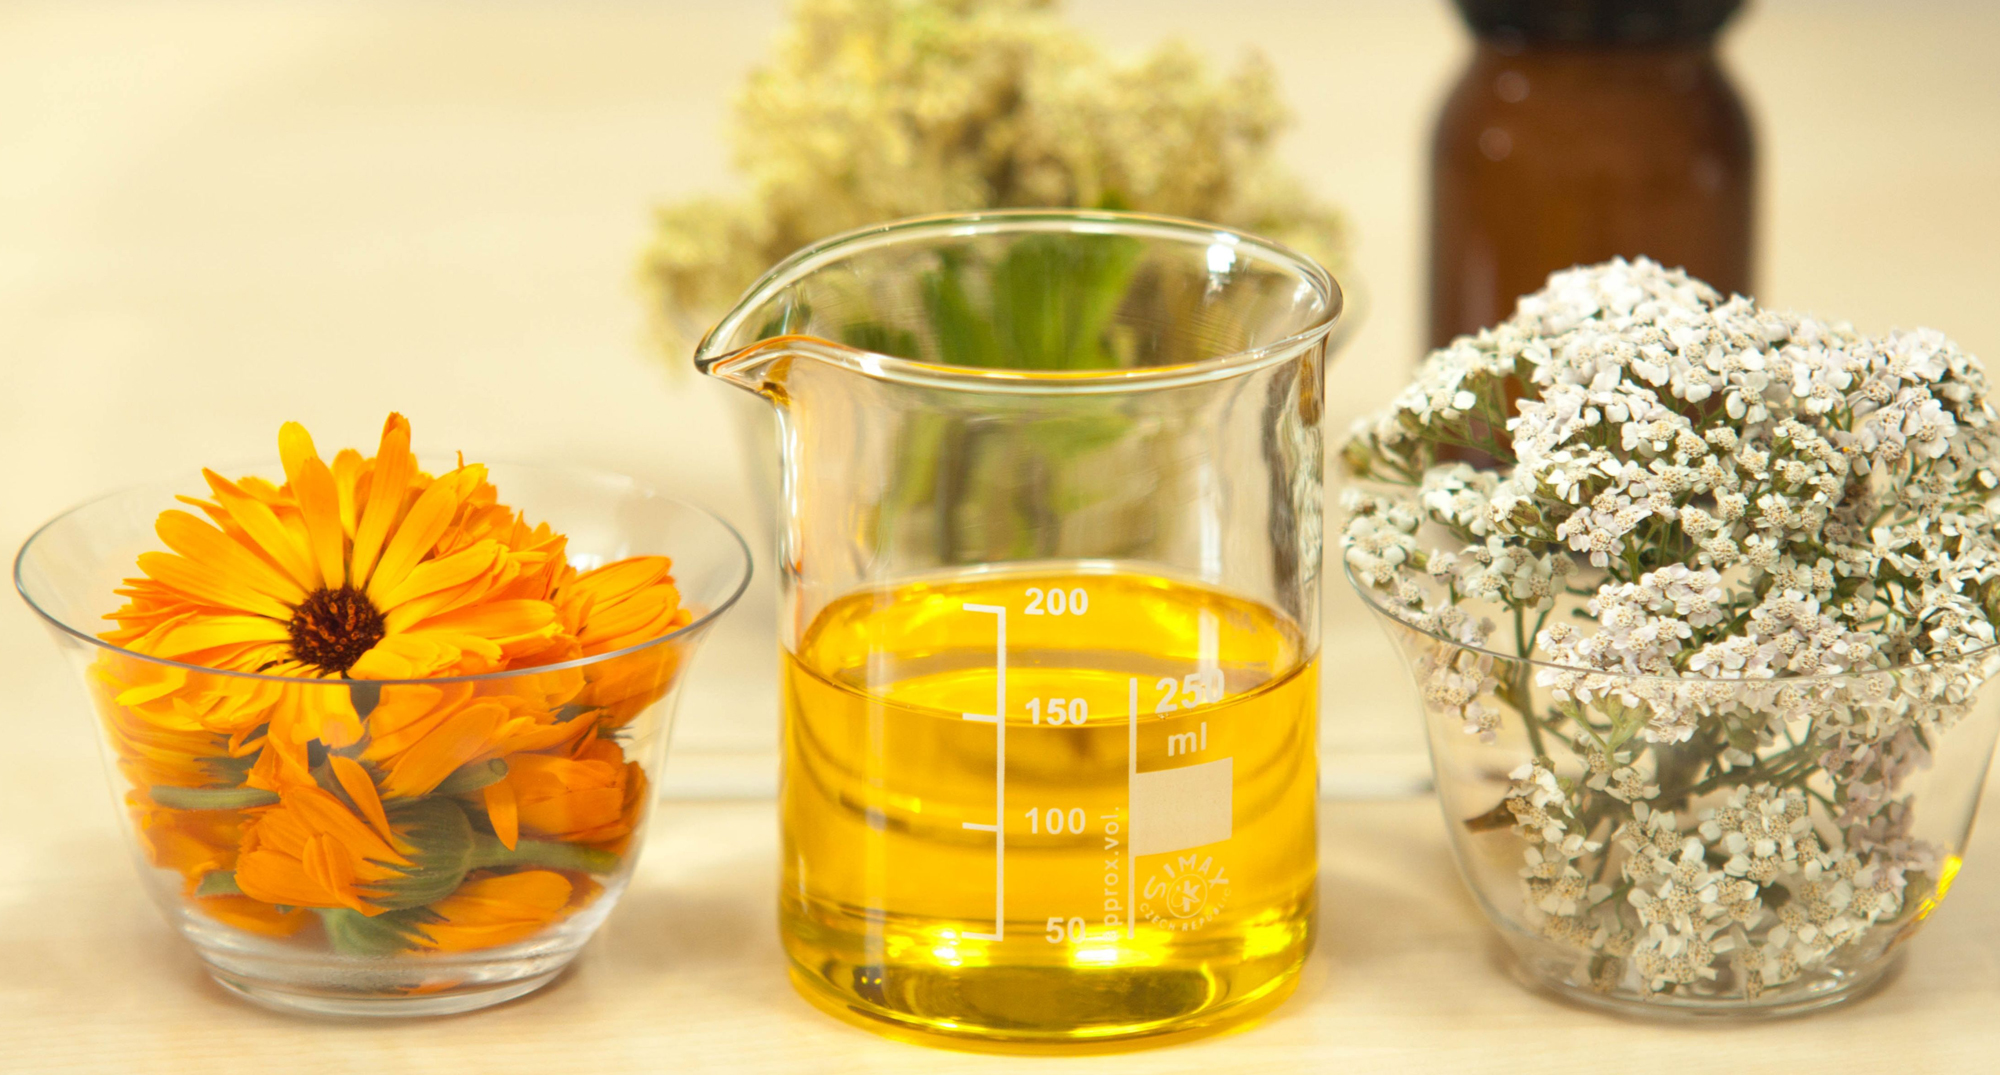 GREAT HEALTH: Tea Tree Oil